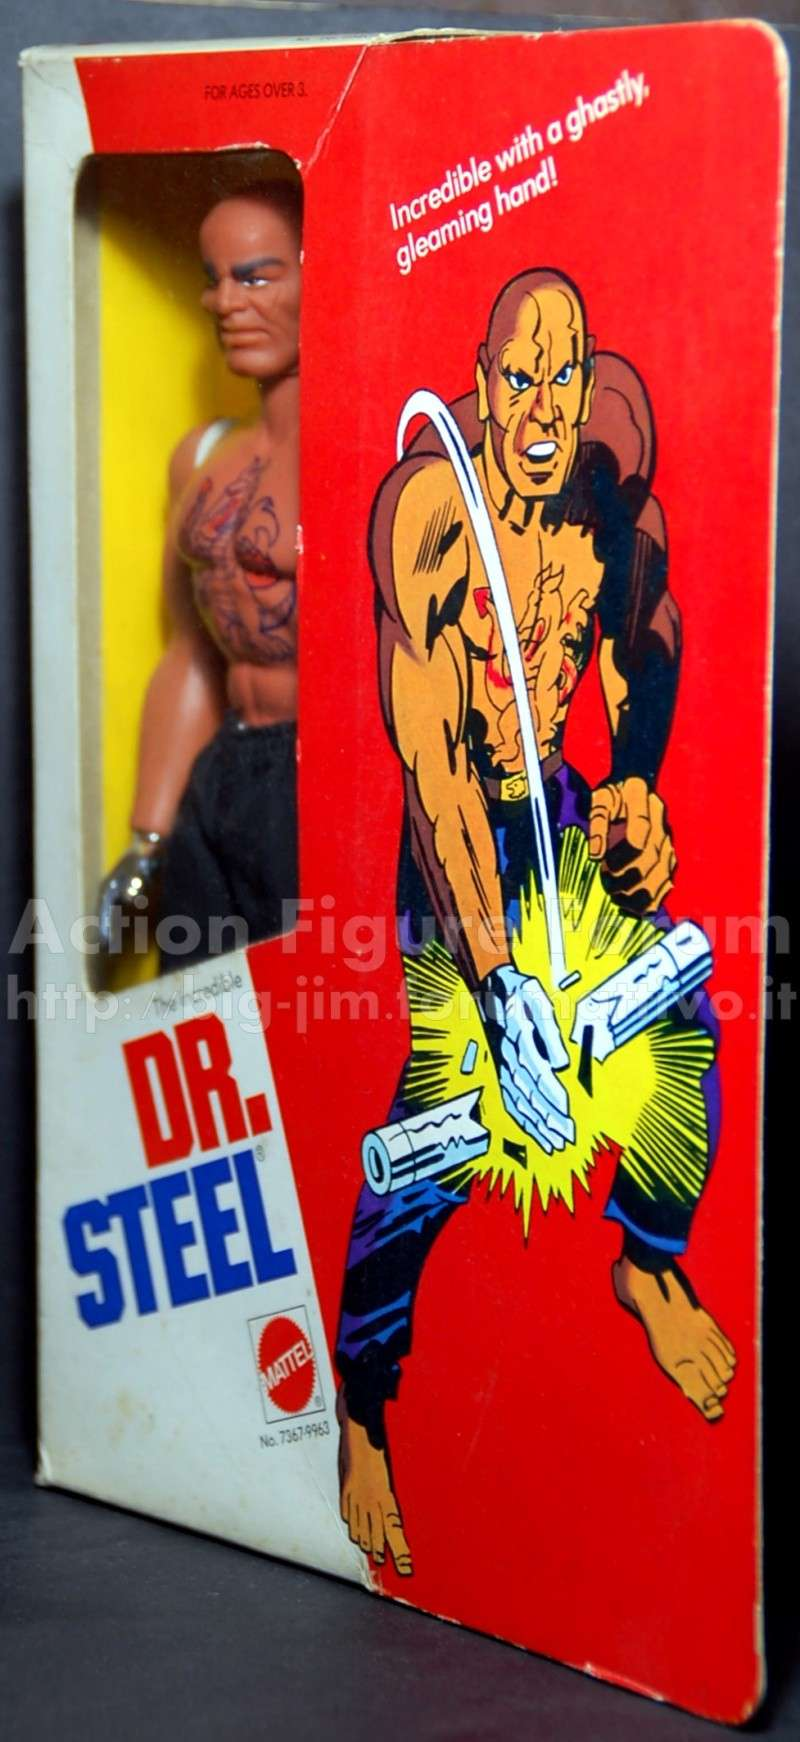 "DR. STEEL ""the incredible"" No. 7367 - 9963 Steel-11"